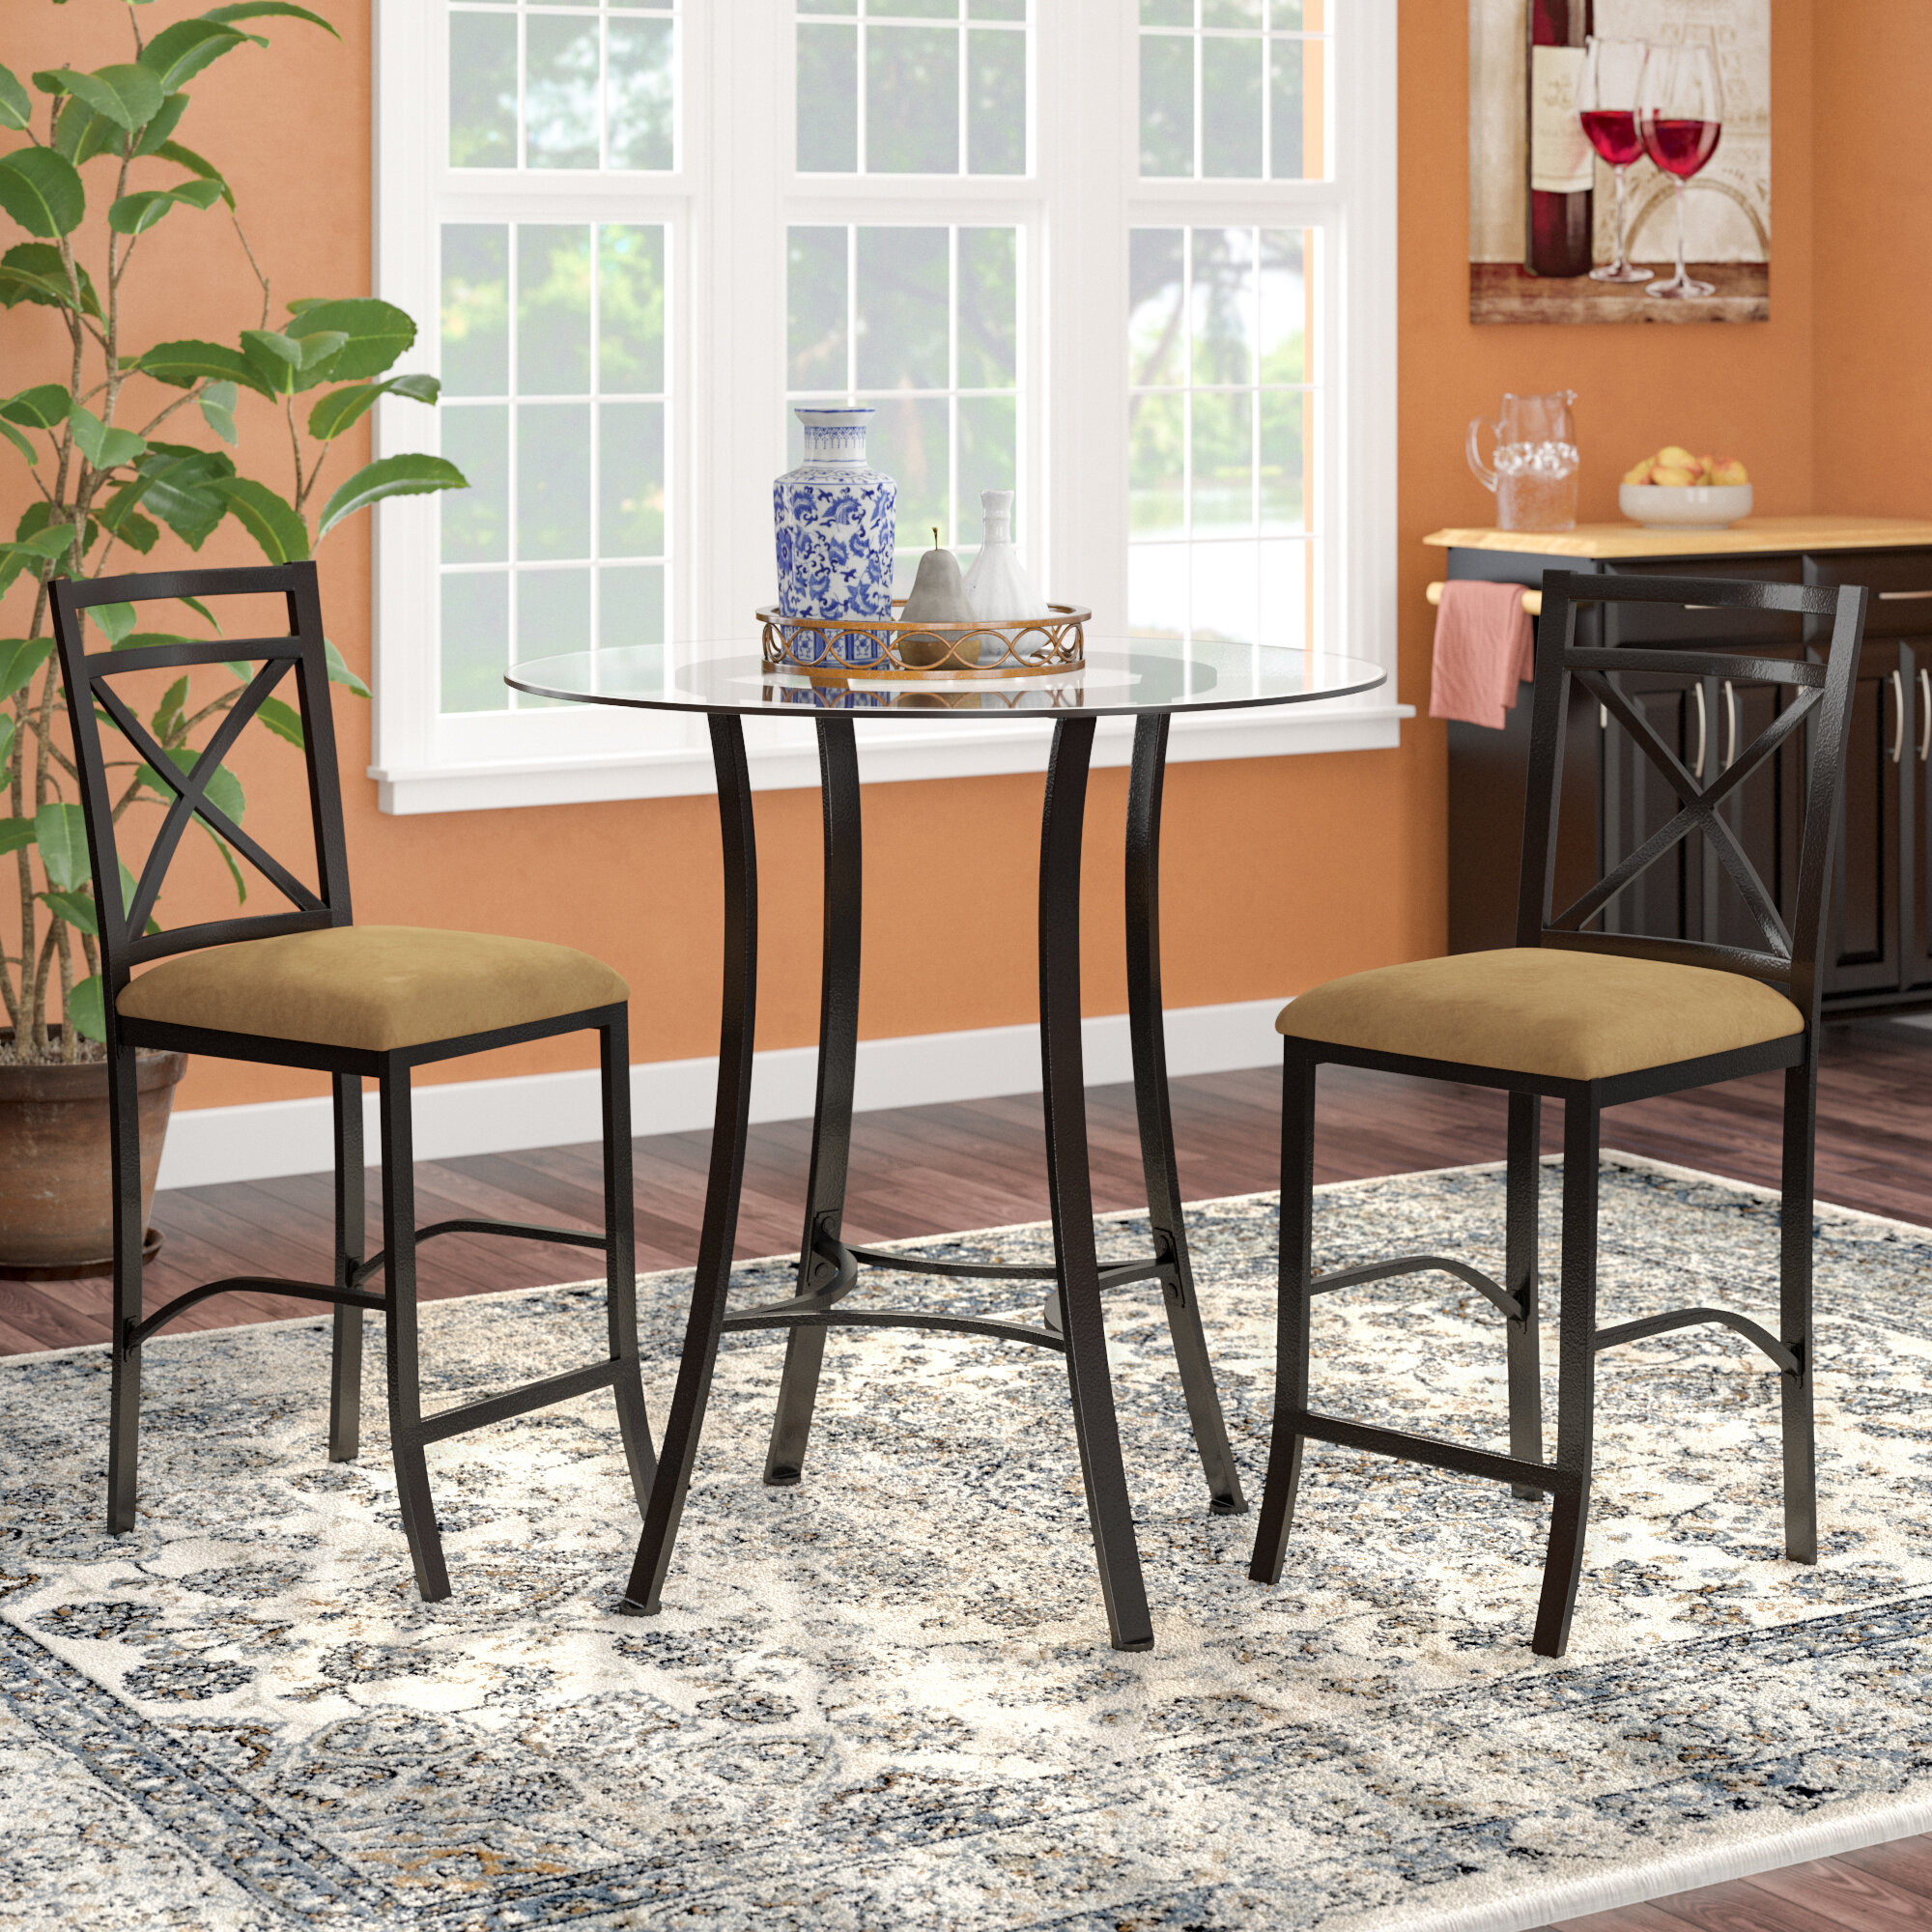 Details About Winston Porter Saleh 3 Piece Counter Height Dining Set Within Most Recent Mizpah 3 Piece Counter Height Dining Sets (View 9 of 20)